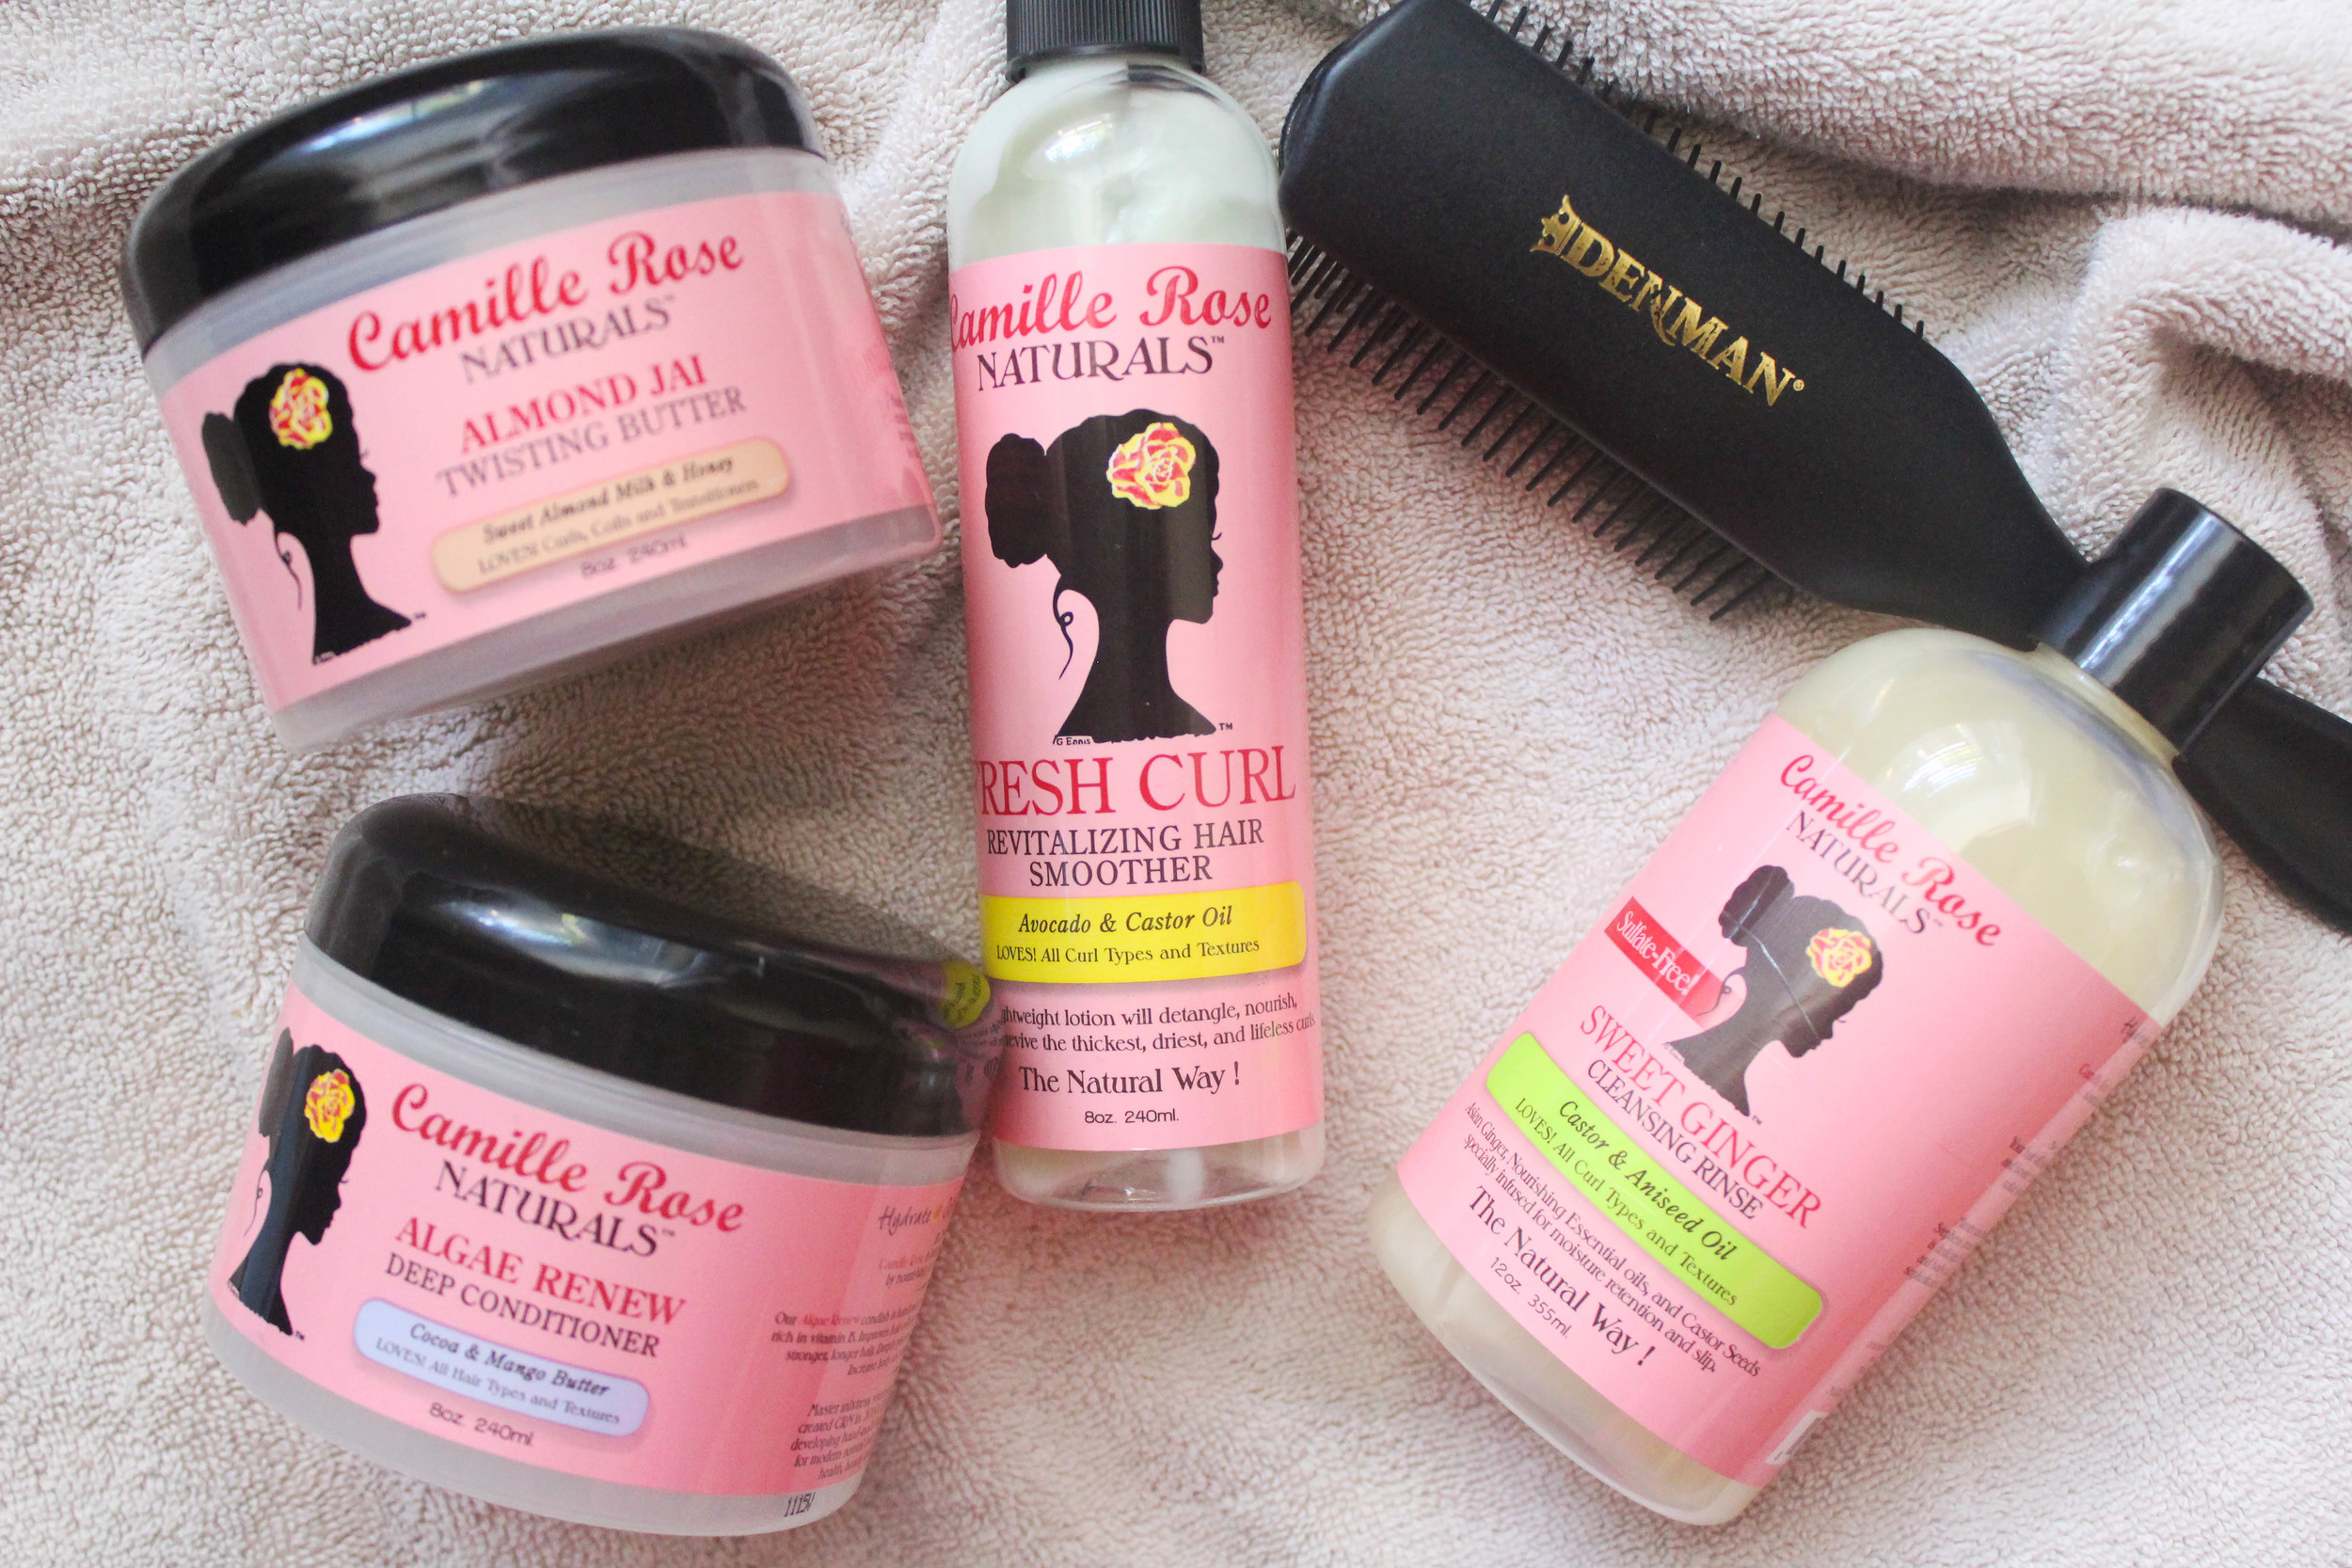 camille rose naturals routine